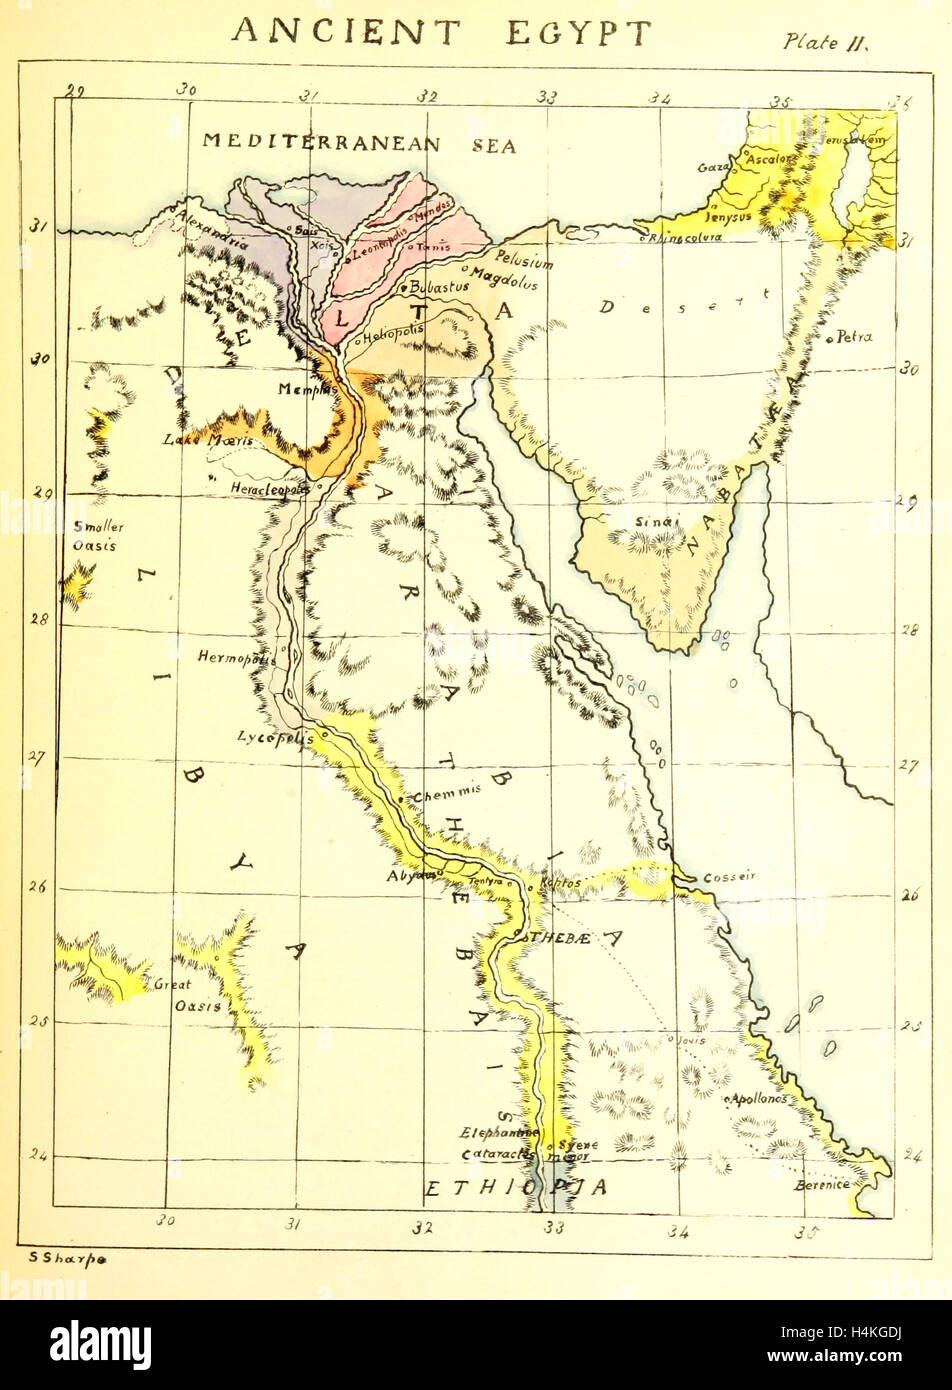 Map ancient egypt 19th century engraving stock photo royalty map ancient egypt 19th century engraving gumiabroncs Images